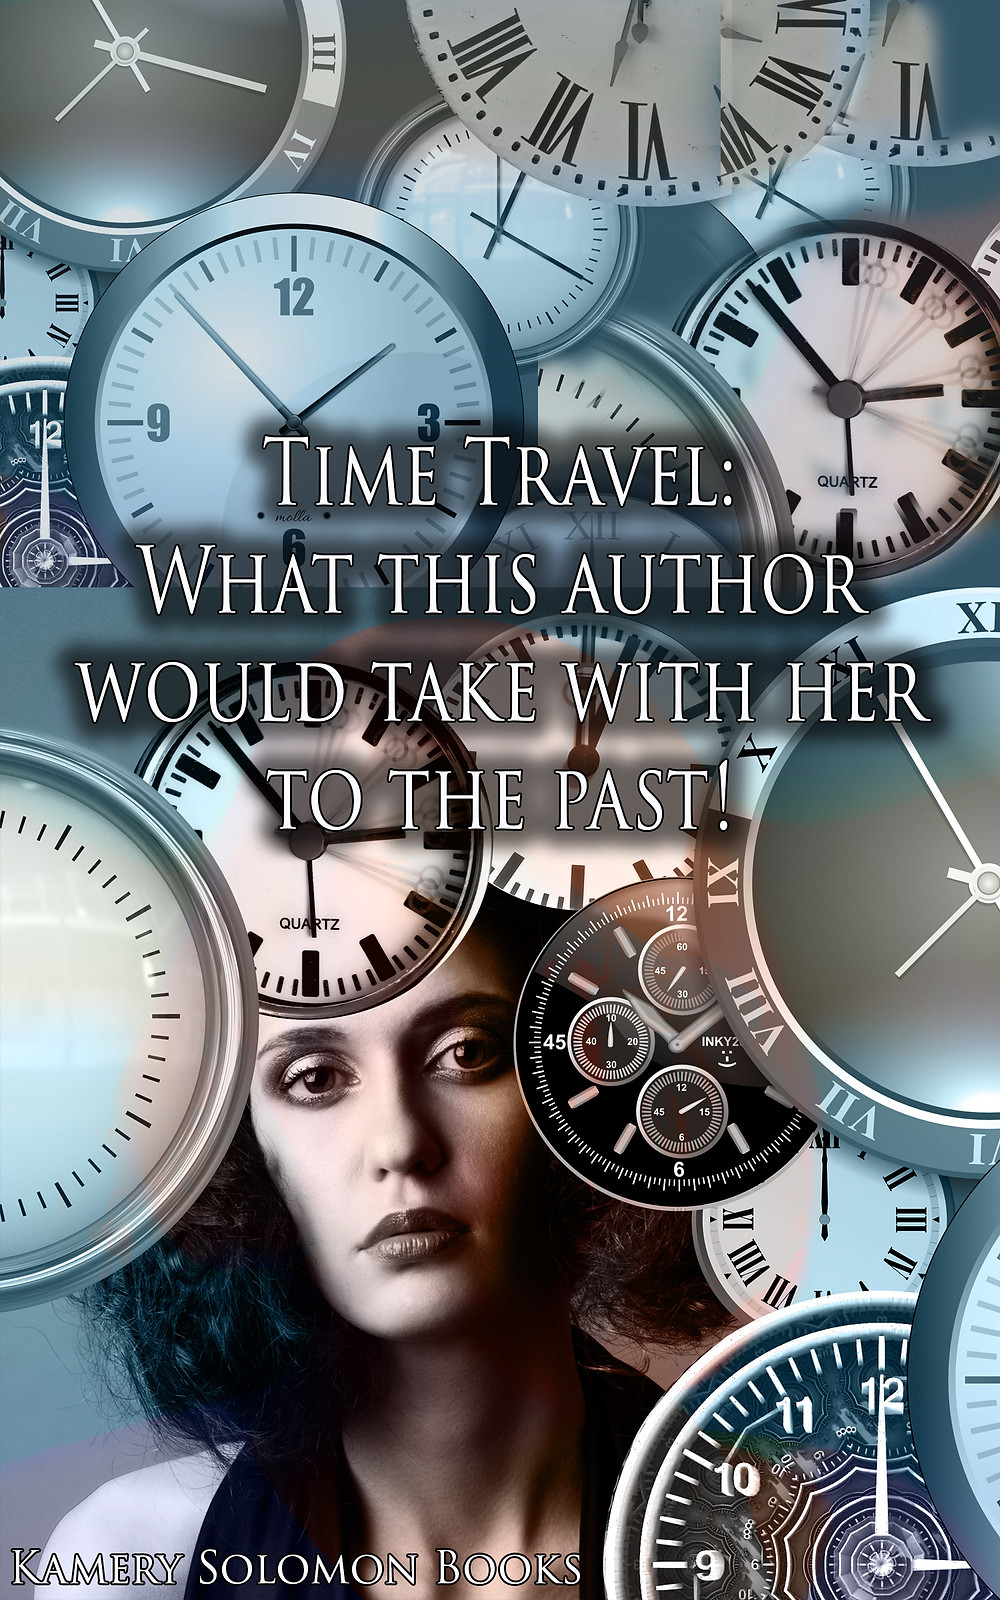 #1 Bestselling Time Travel Romance Author Kamery Solomon wants to know: What would you take with you to the past?